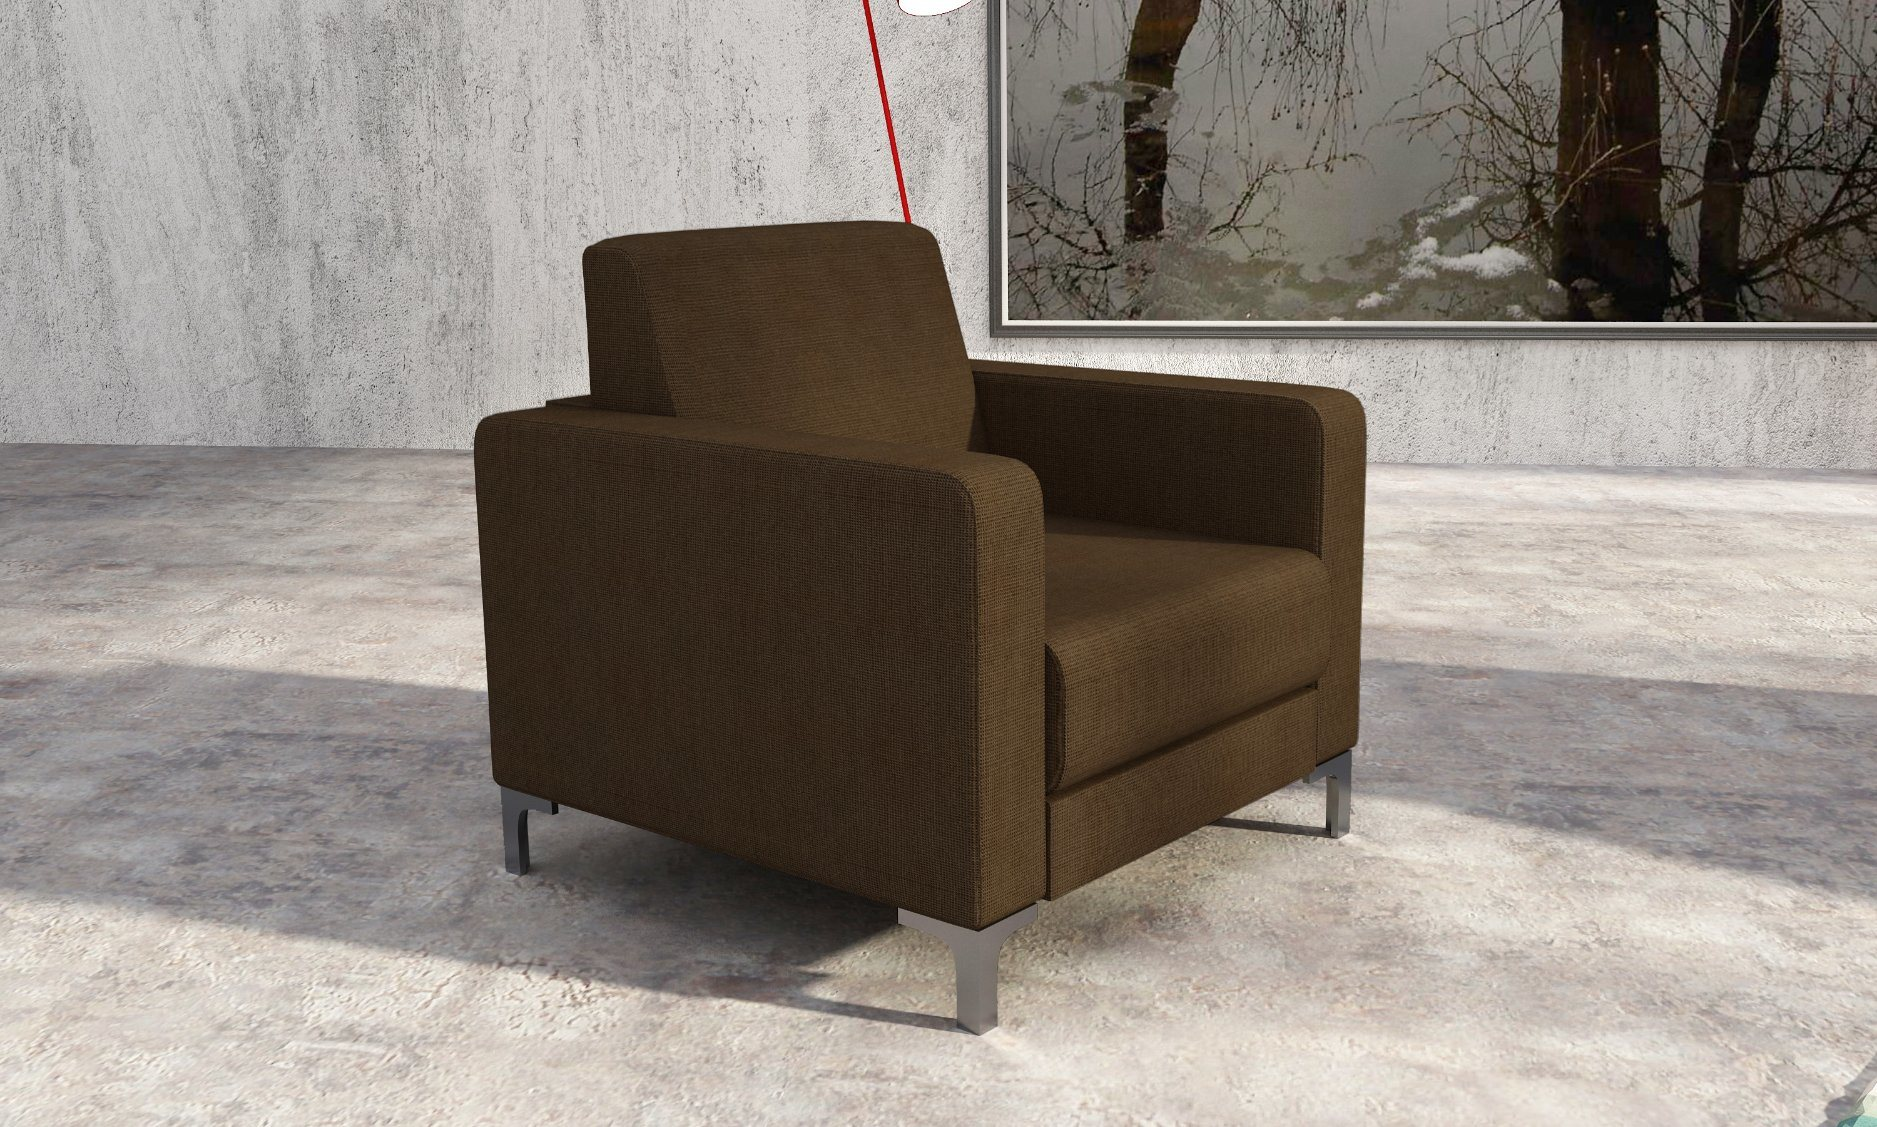 Modern Office Furniture Sofa Set With Steel Legs